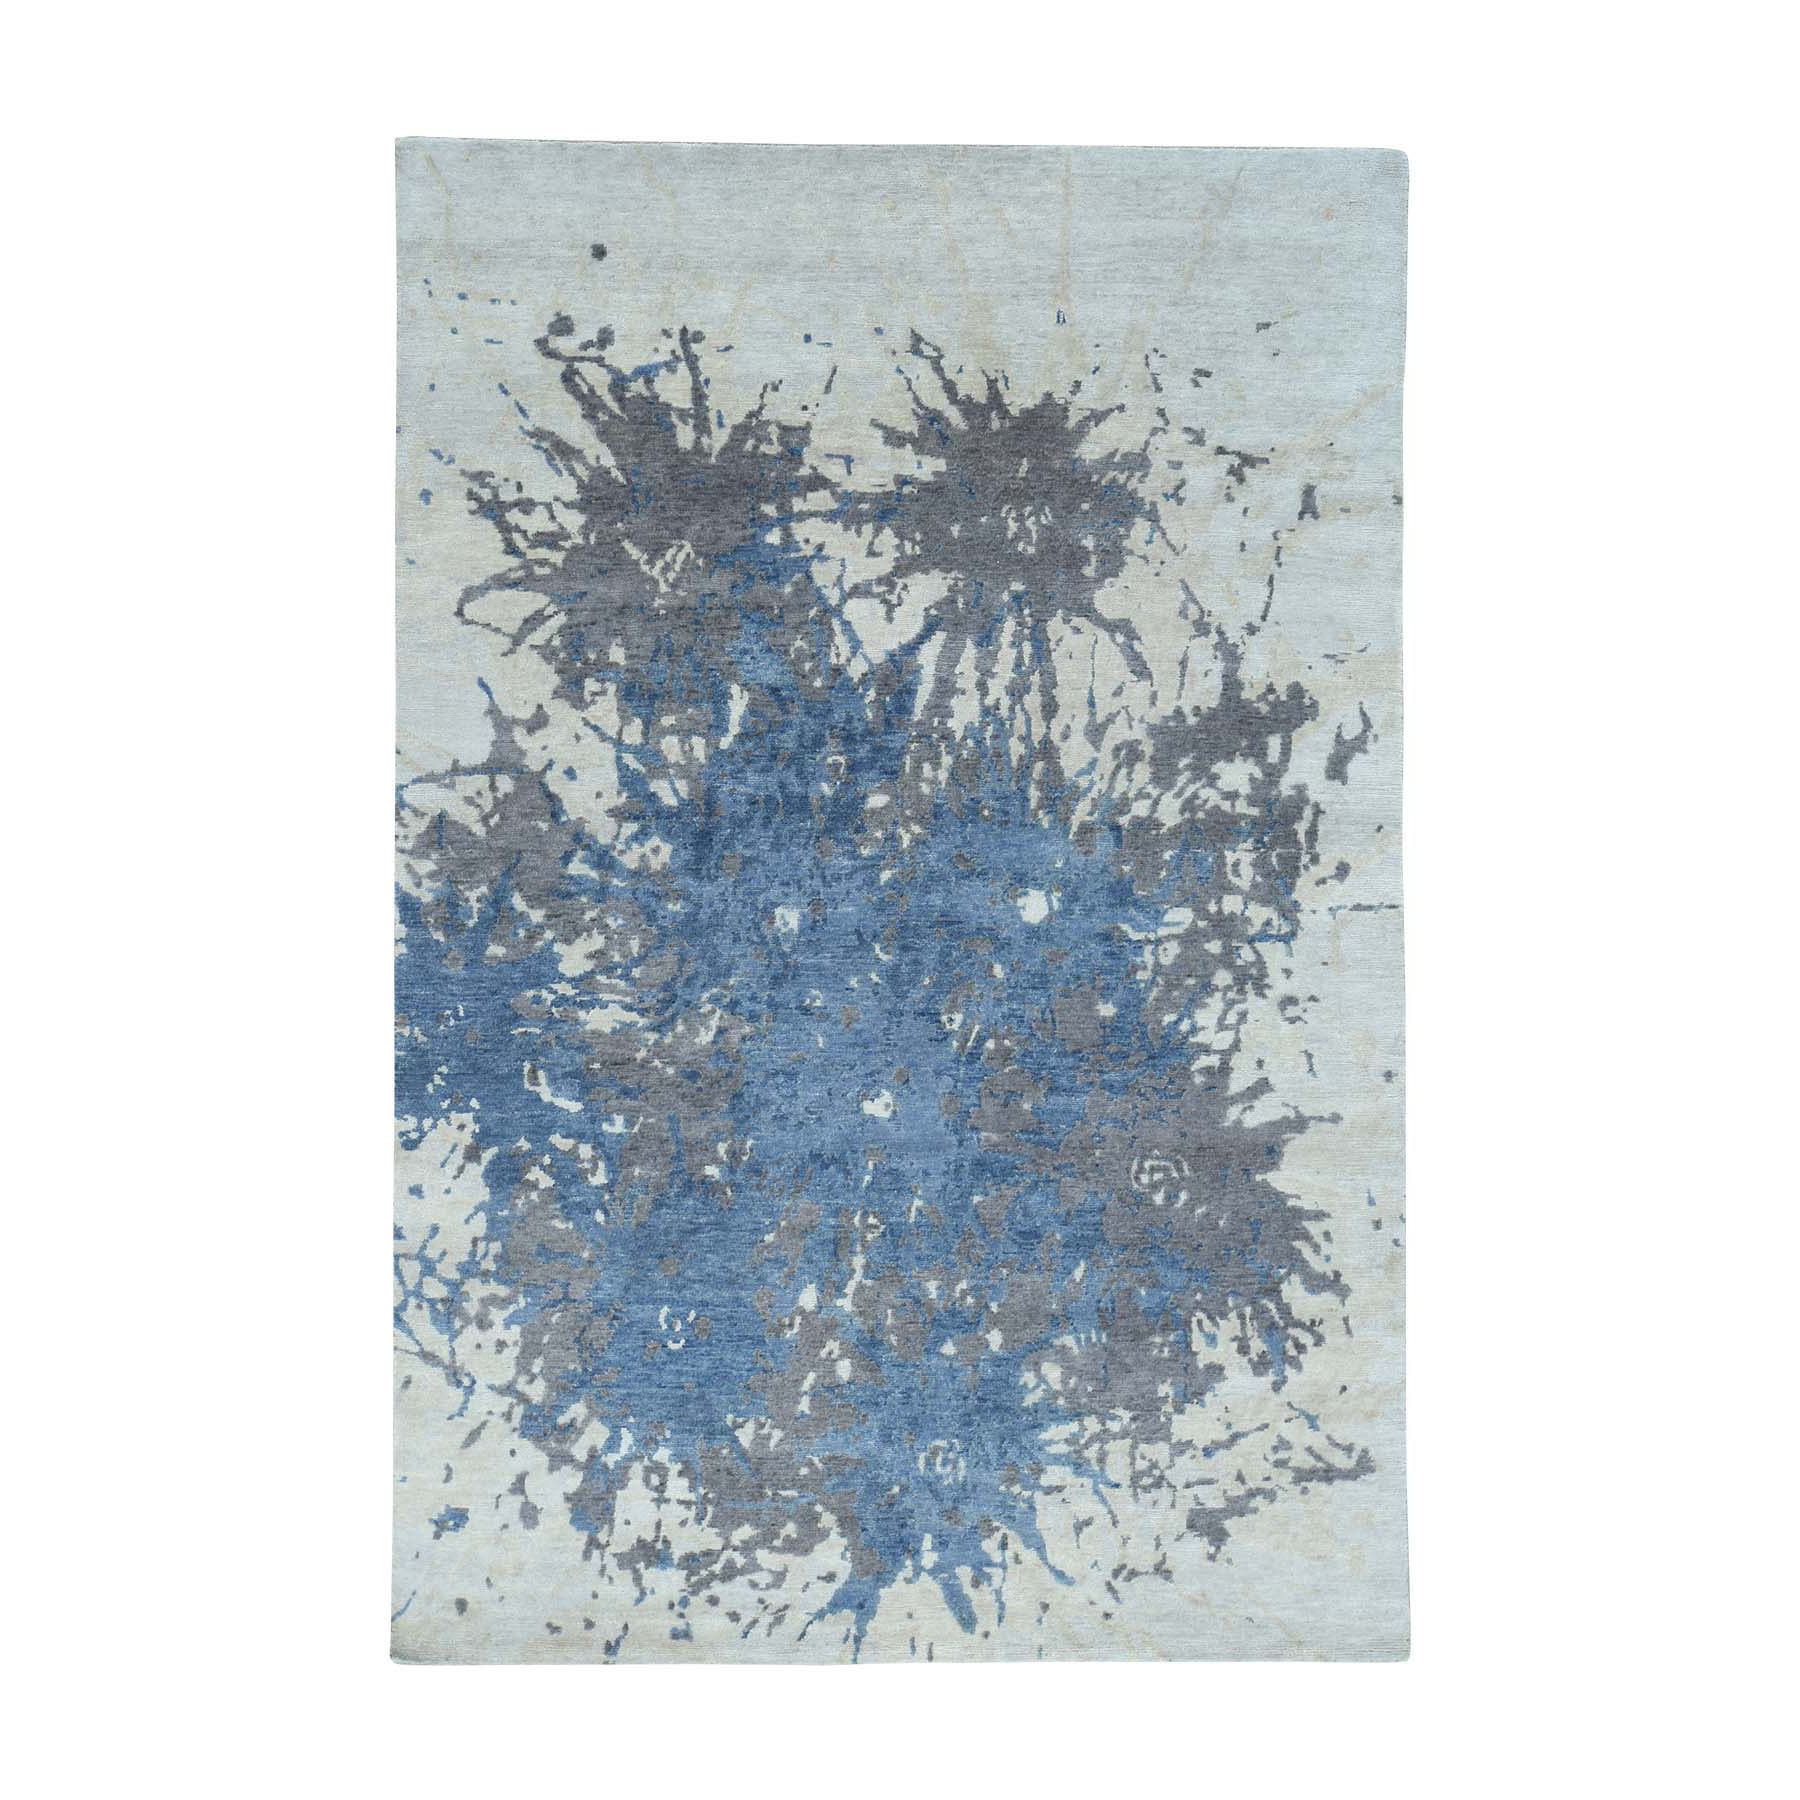 6'X9' Hand-Knotted 100 Percent Wool Splash Abstract Design Carpet moacbe76